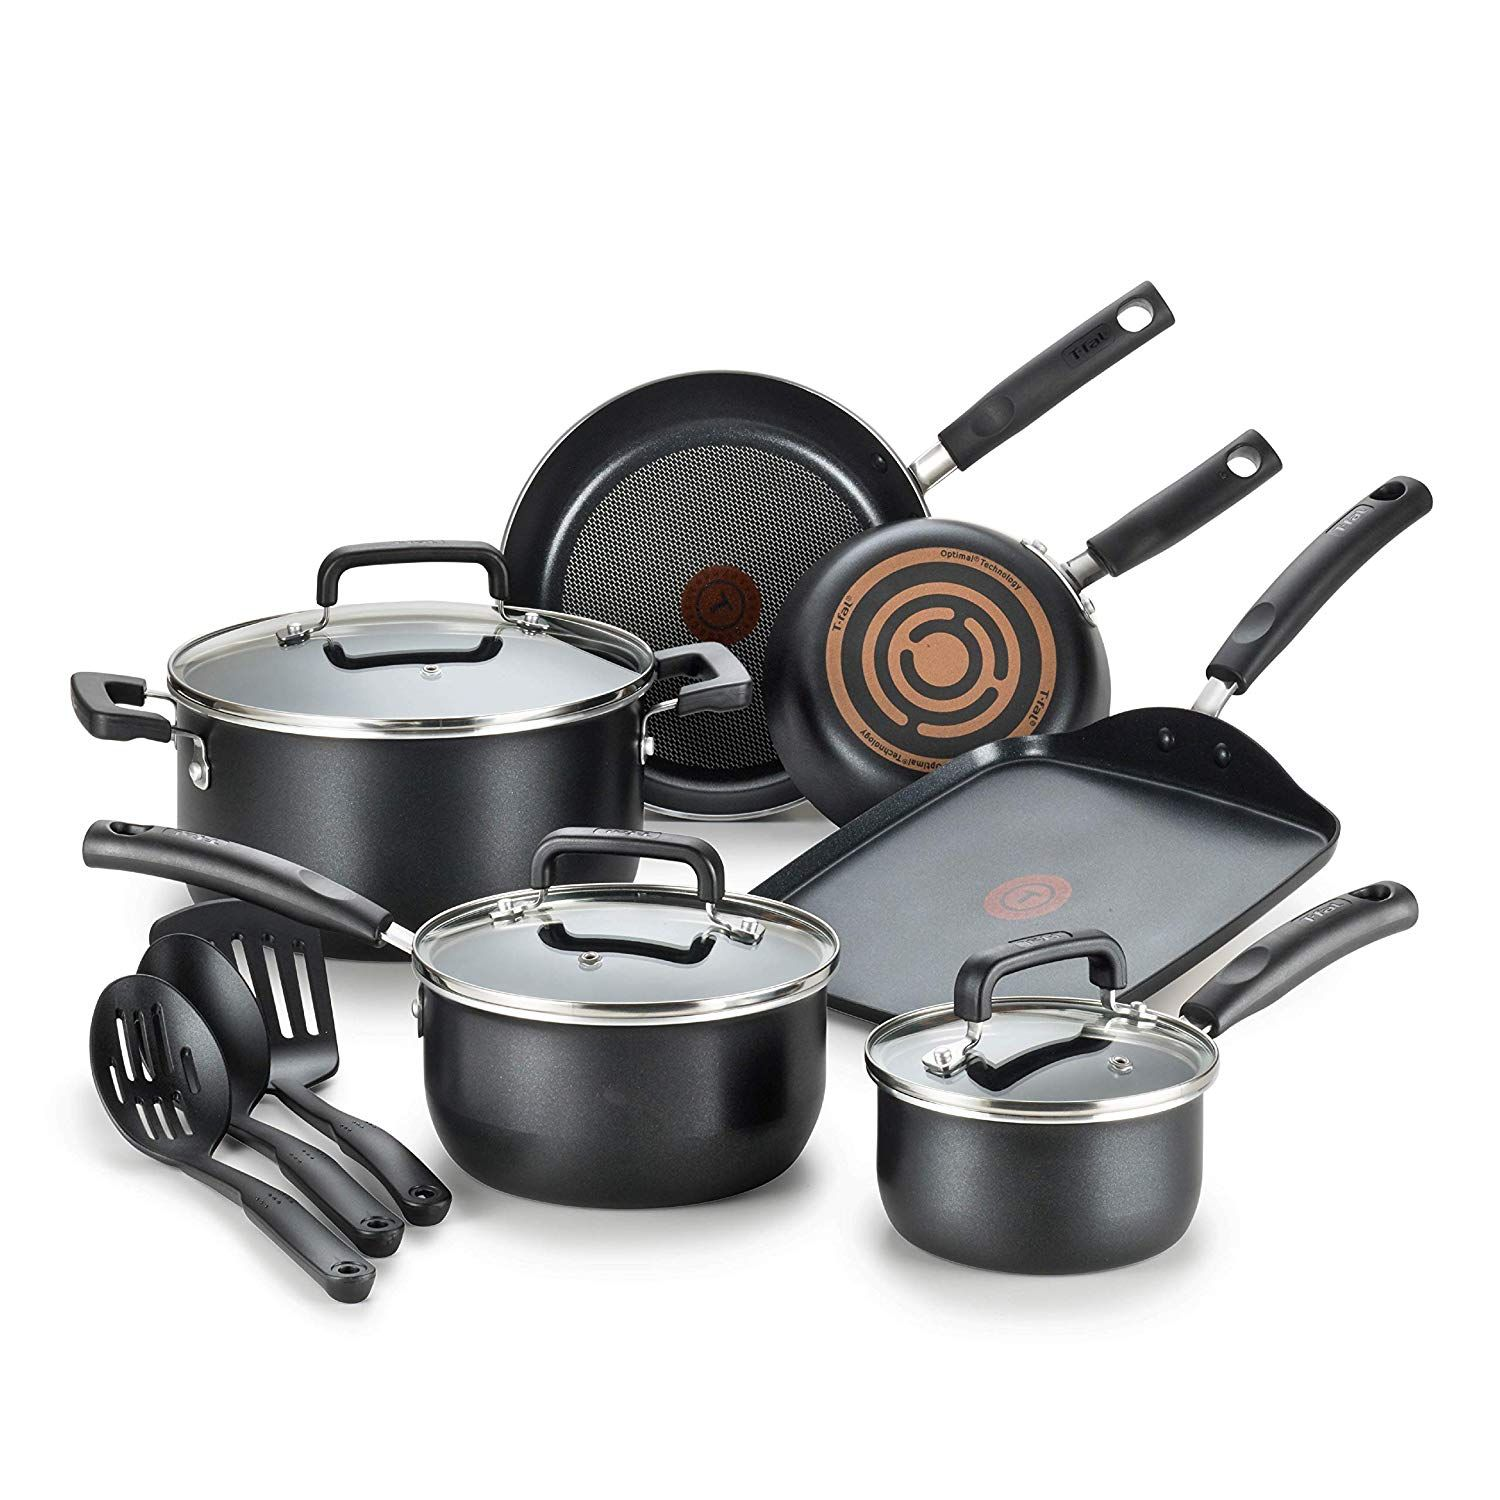 19 Gifts For The Home Chef That They Ll Be Excited To Use Safest Cookware Dishwasher Safe Cookware Nonstick Cookware